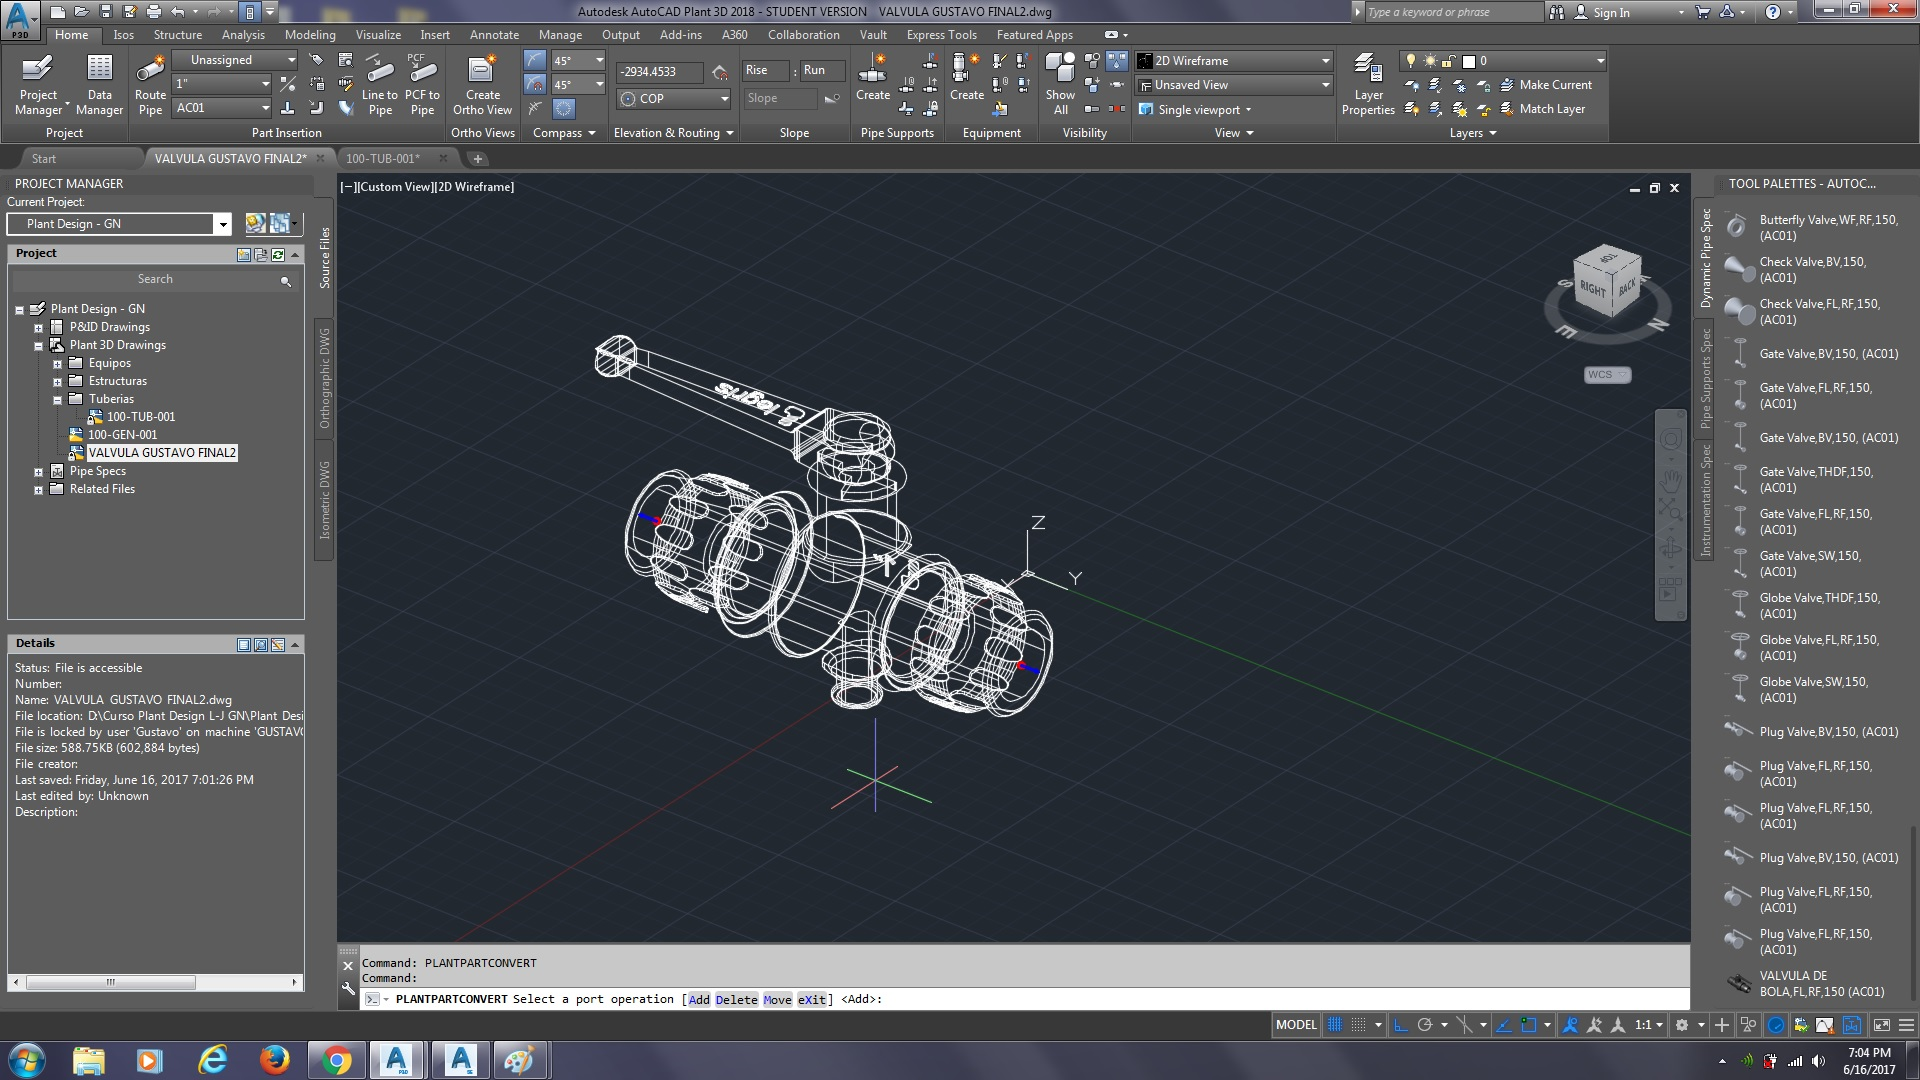 PROBLEM OF SCALE WITH SPEC EDITOR IN AUTOCAD PLANT 3D 2018